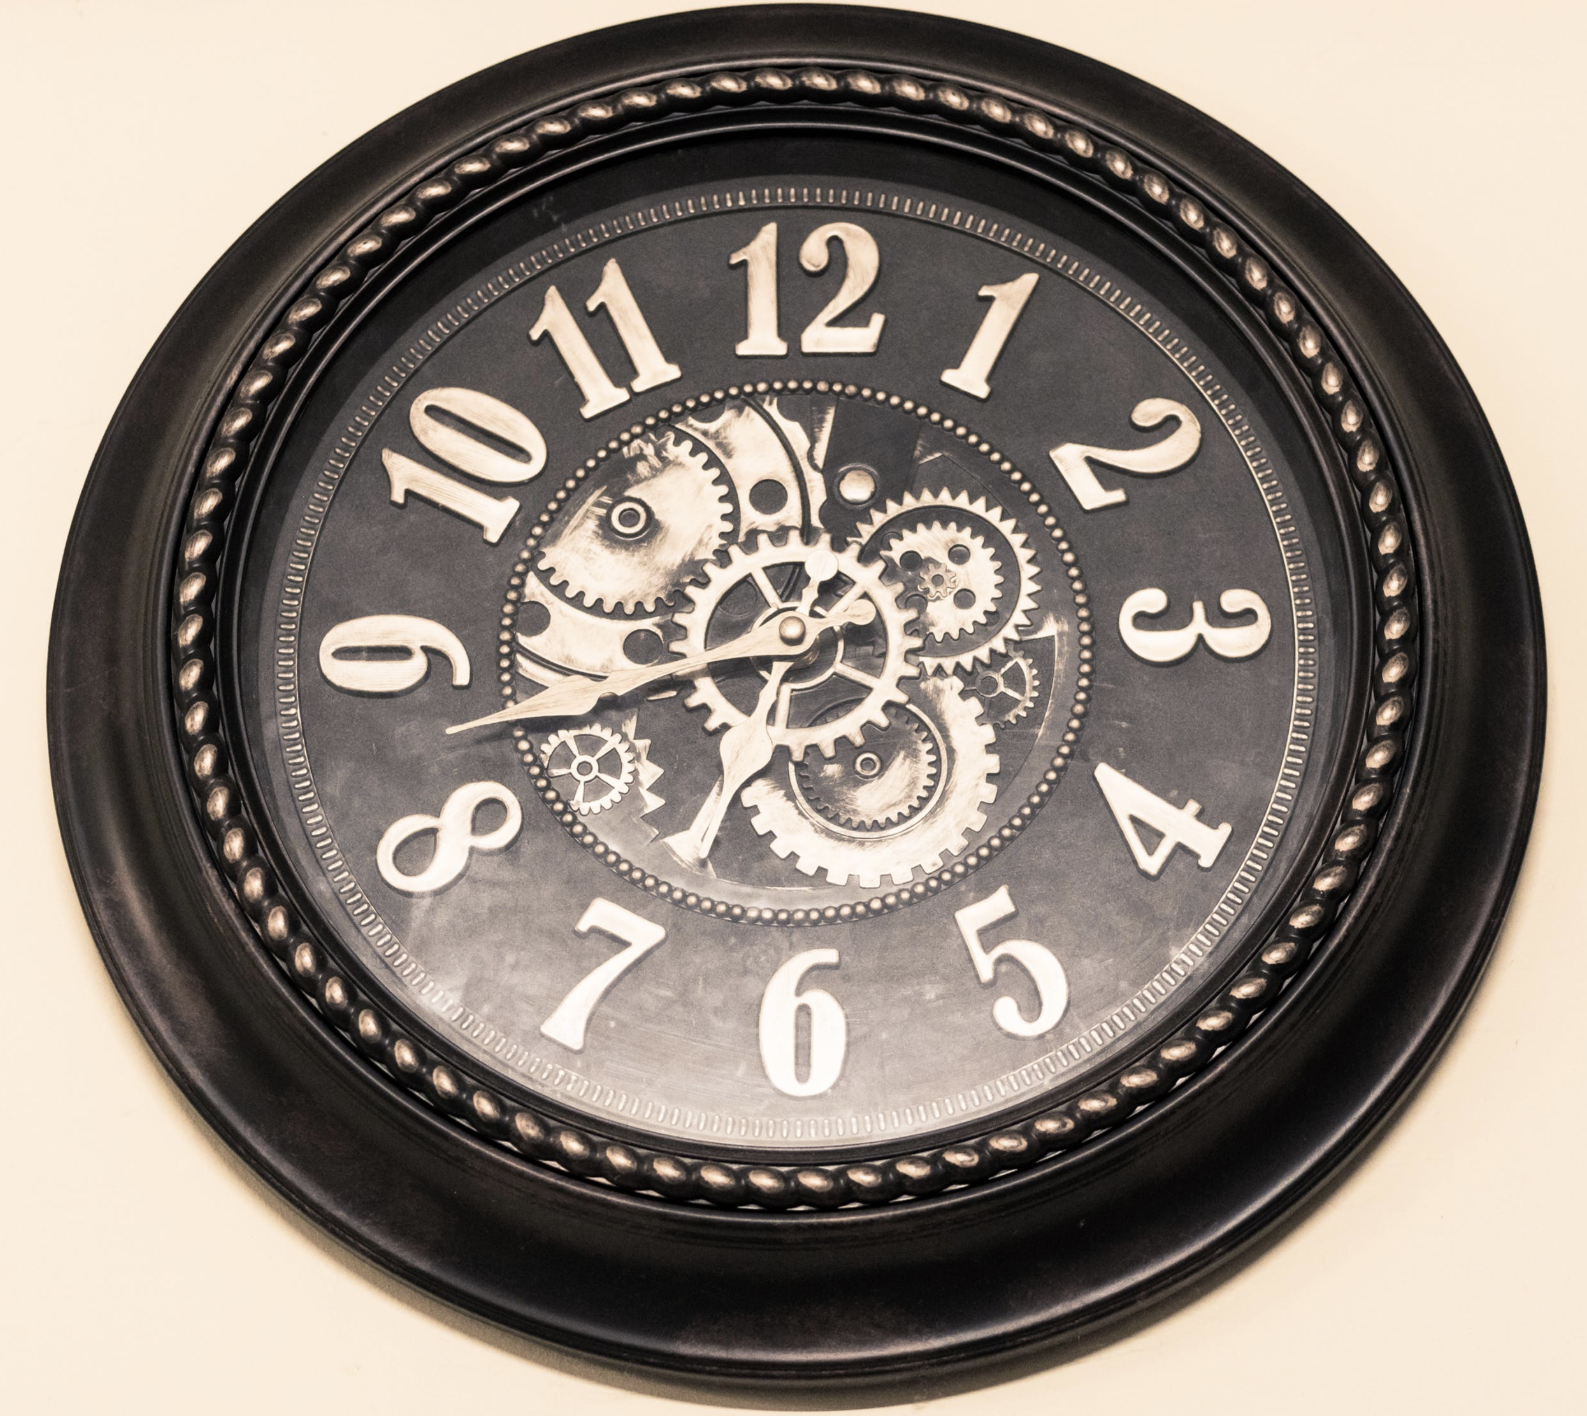 Bitcoin's Block Timestamp Protection Rules